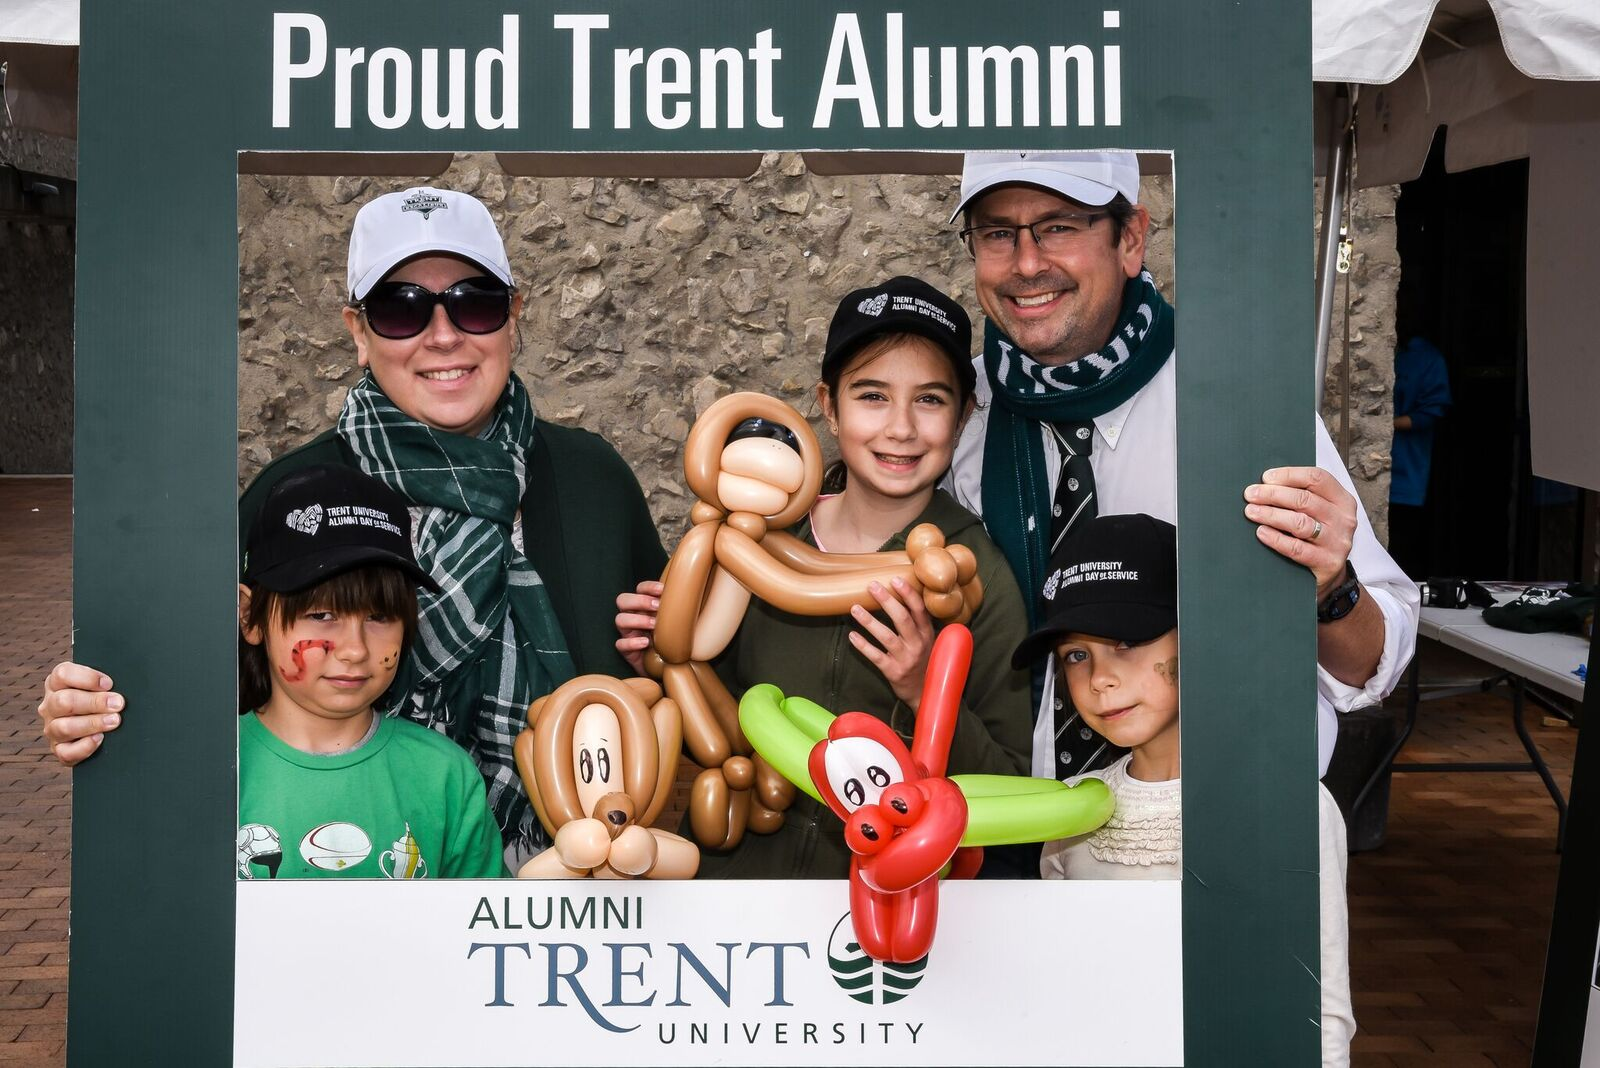 a proud Trent family gathering under the alumni photo frame